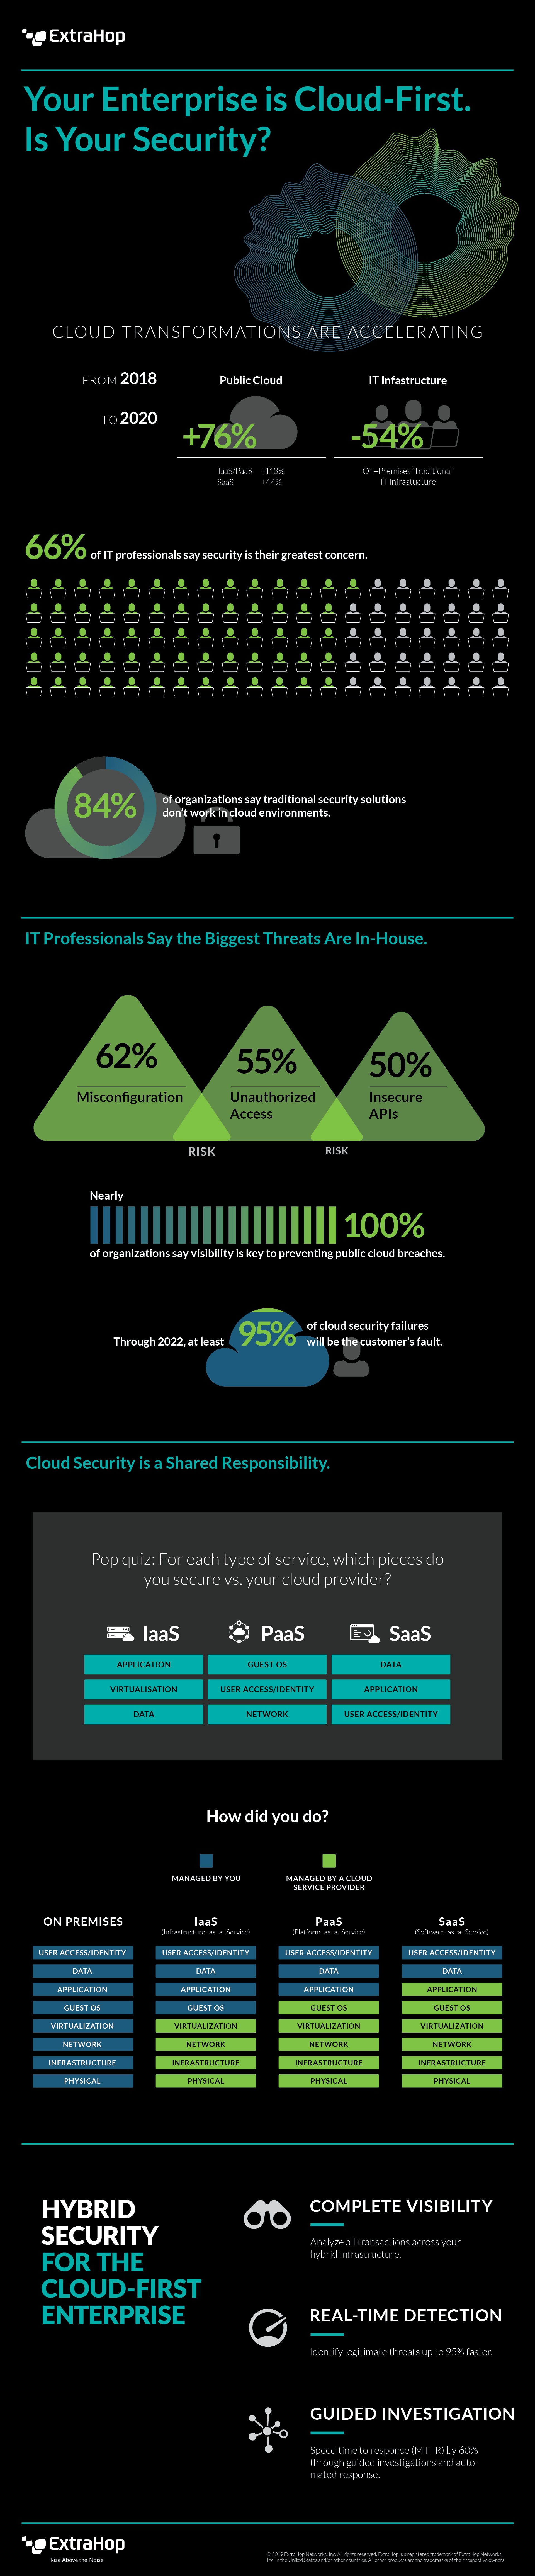 Cloud-First Security Infographic